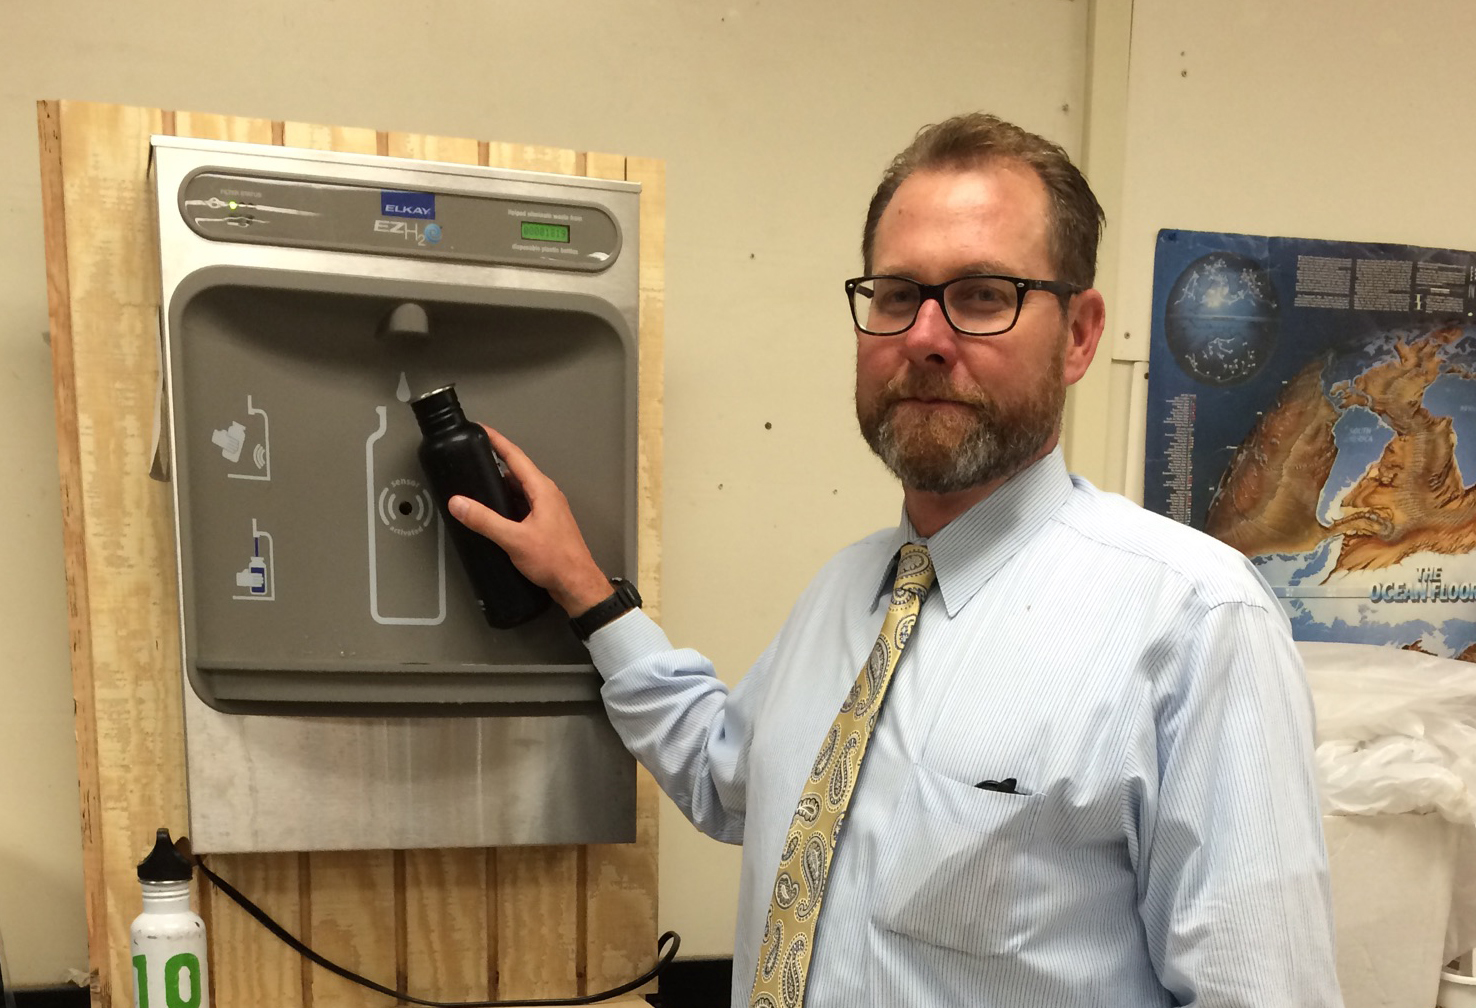 Whitman plans to expand water filter use